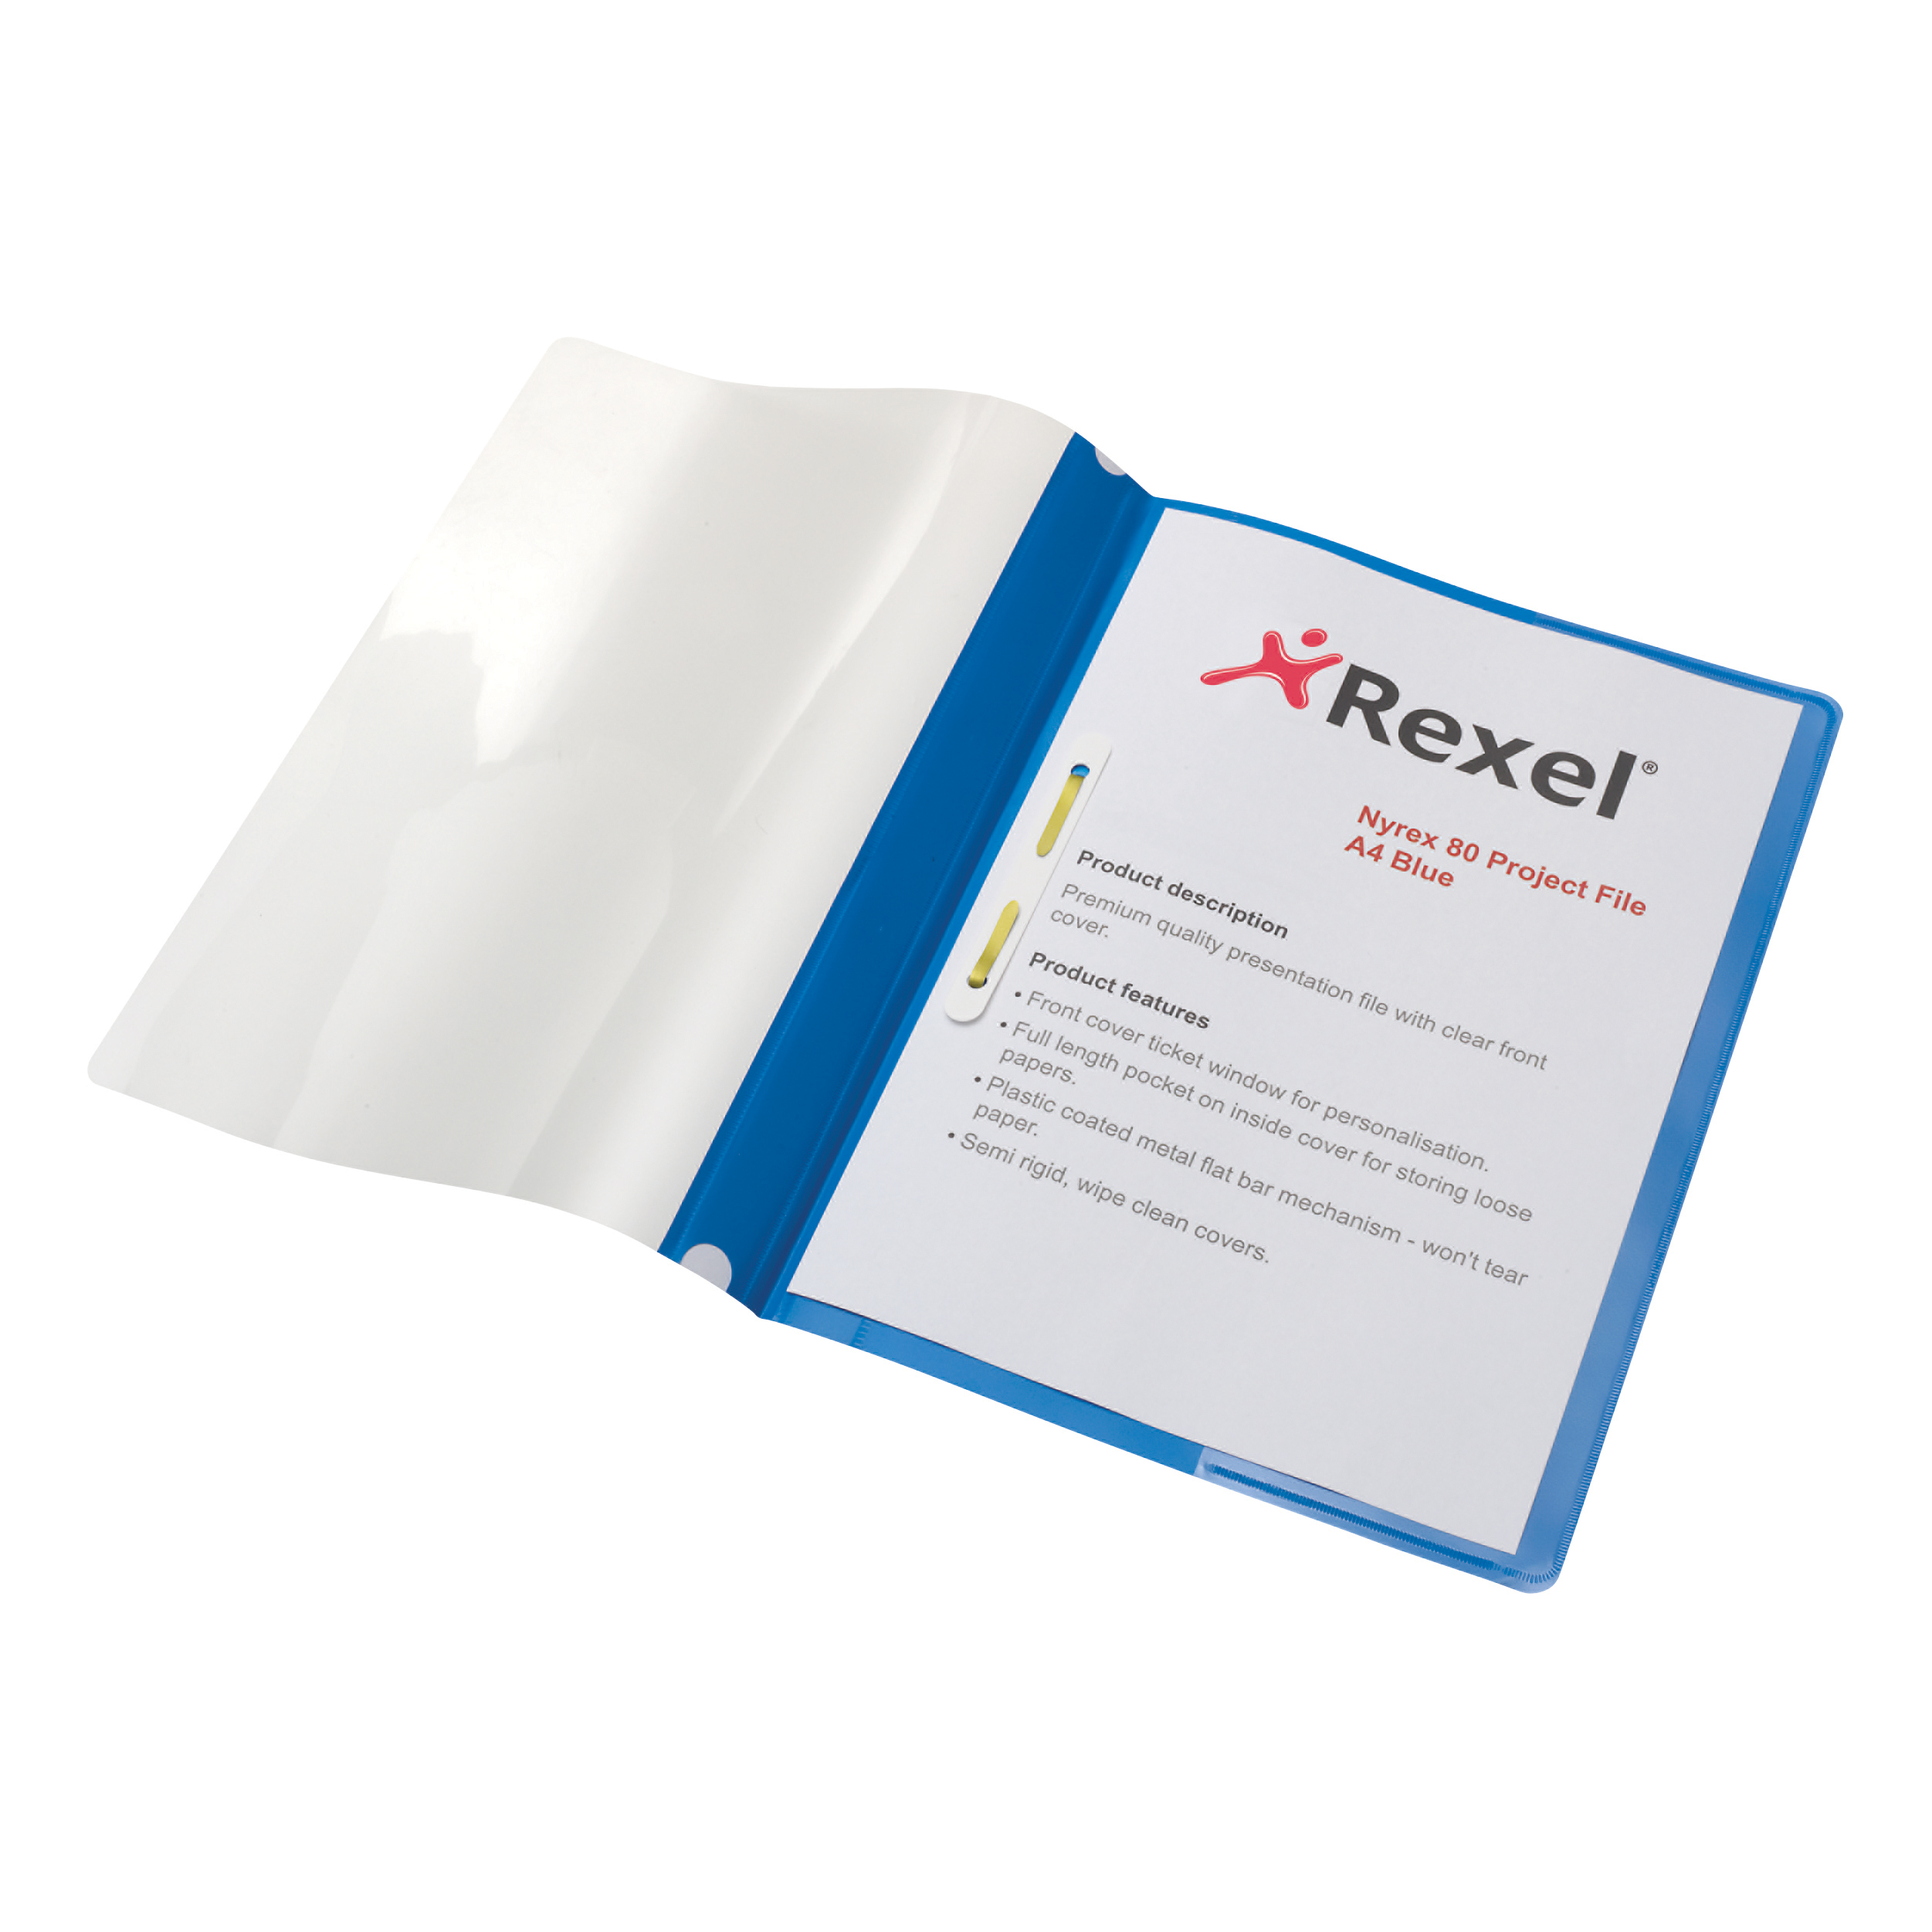 Rexel Nyrex Project Flat Bar File Semi-rigid Plastic Clear Front A4 Blue Ref 13045BU Pack 5